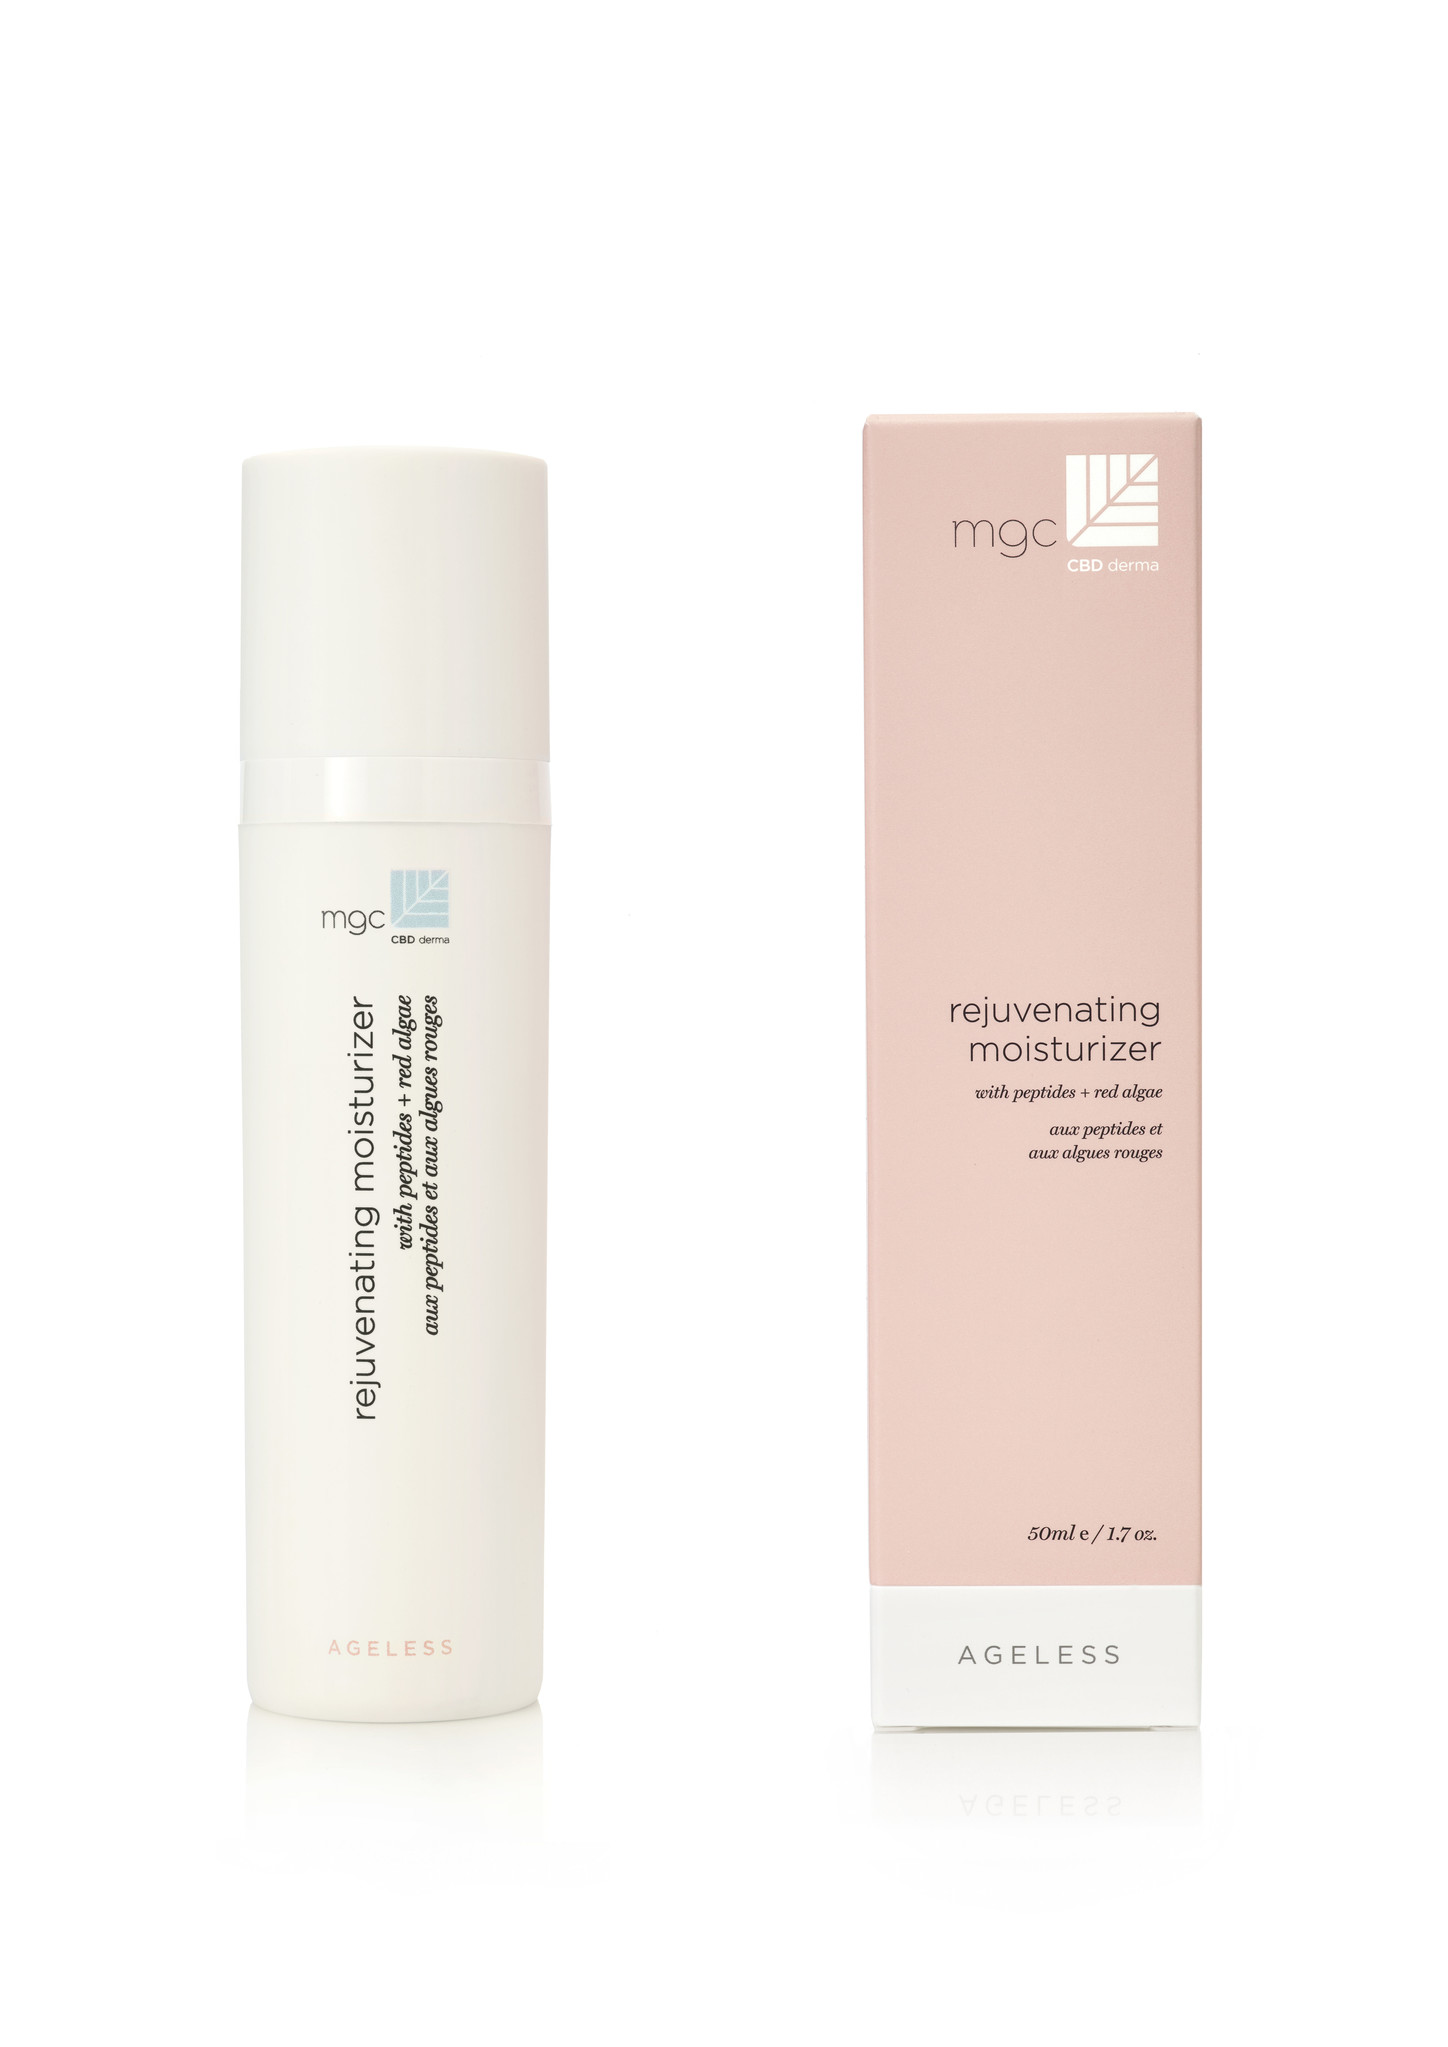 MGC Derma MGC cbd derma-AGELESS rejuvenating moisterizer 50 ml with peptides + red algae Normale/droge huid